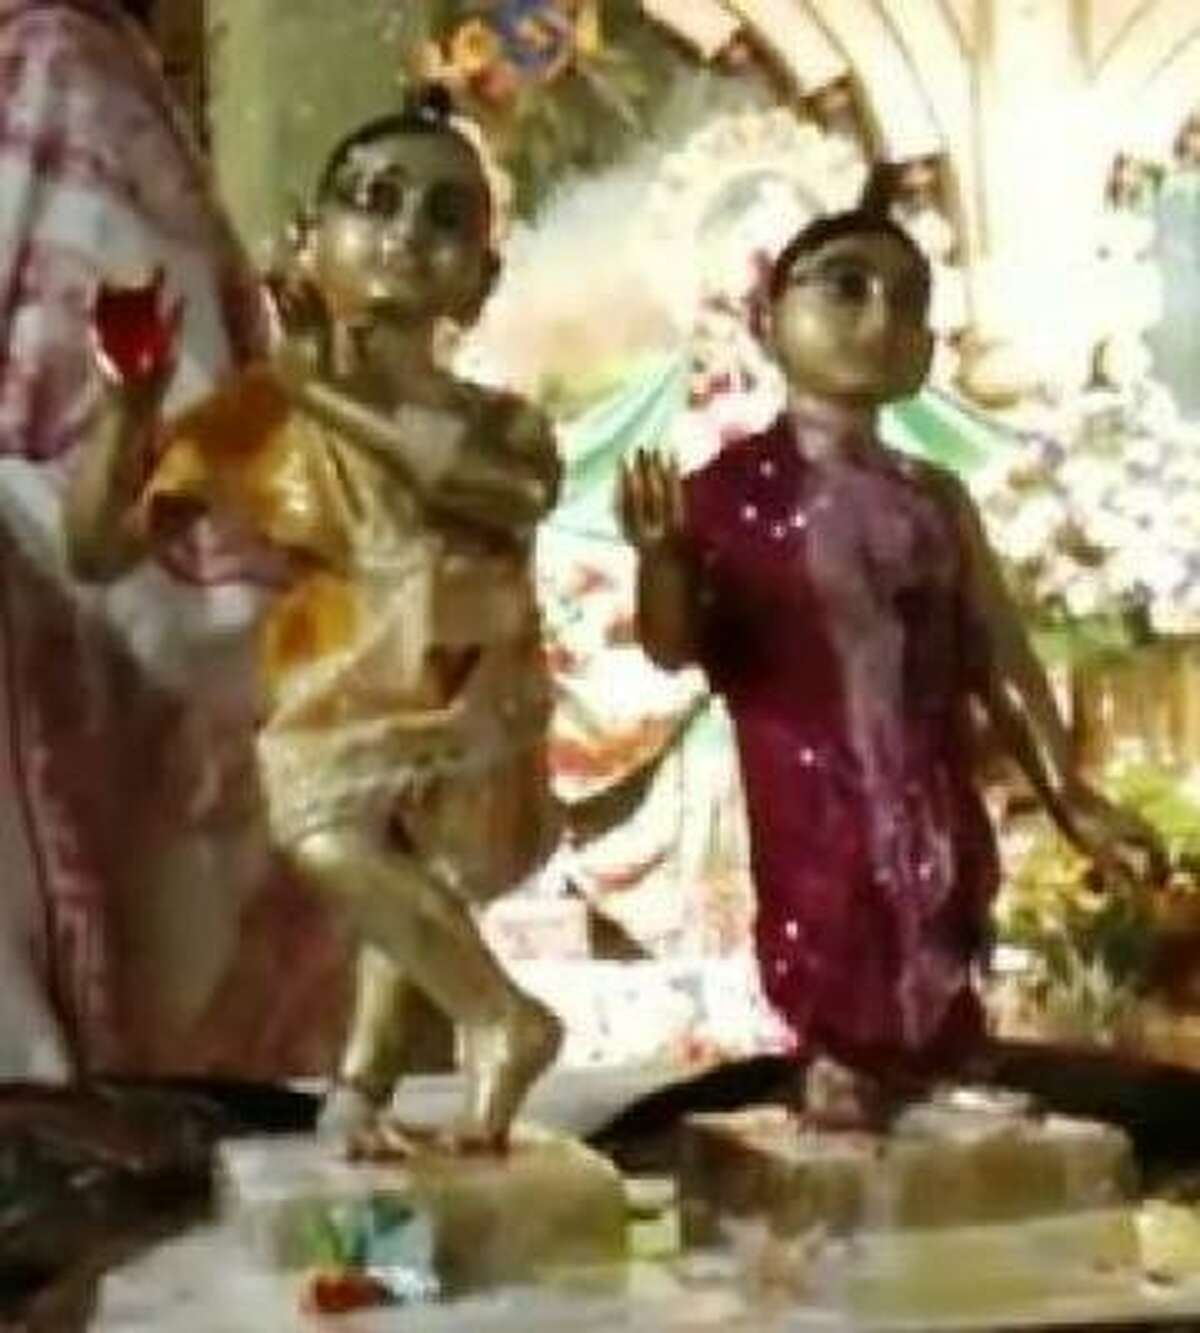 The two statues known as Sri Sri Radha Giridhari are revered as personalities by worshippers at the Houston temple.